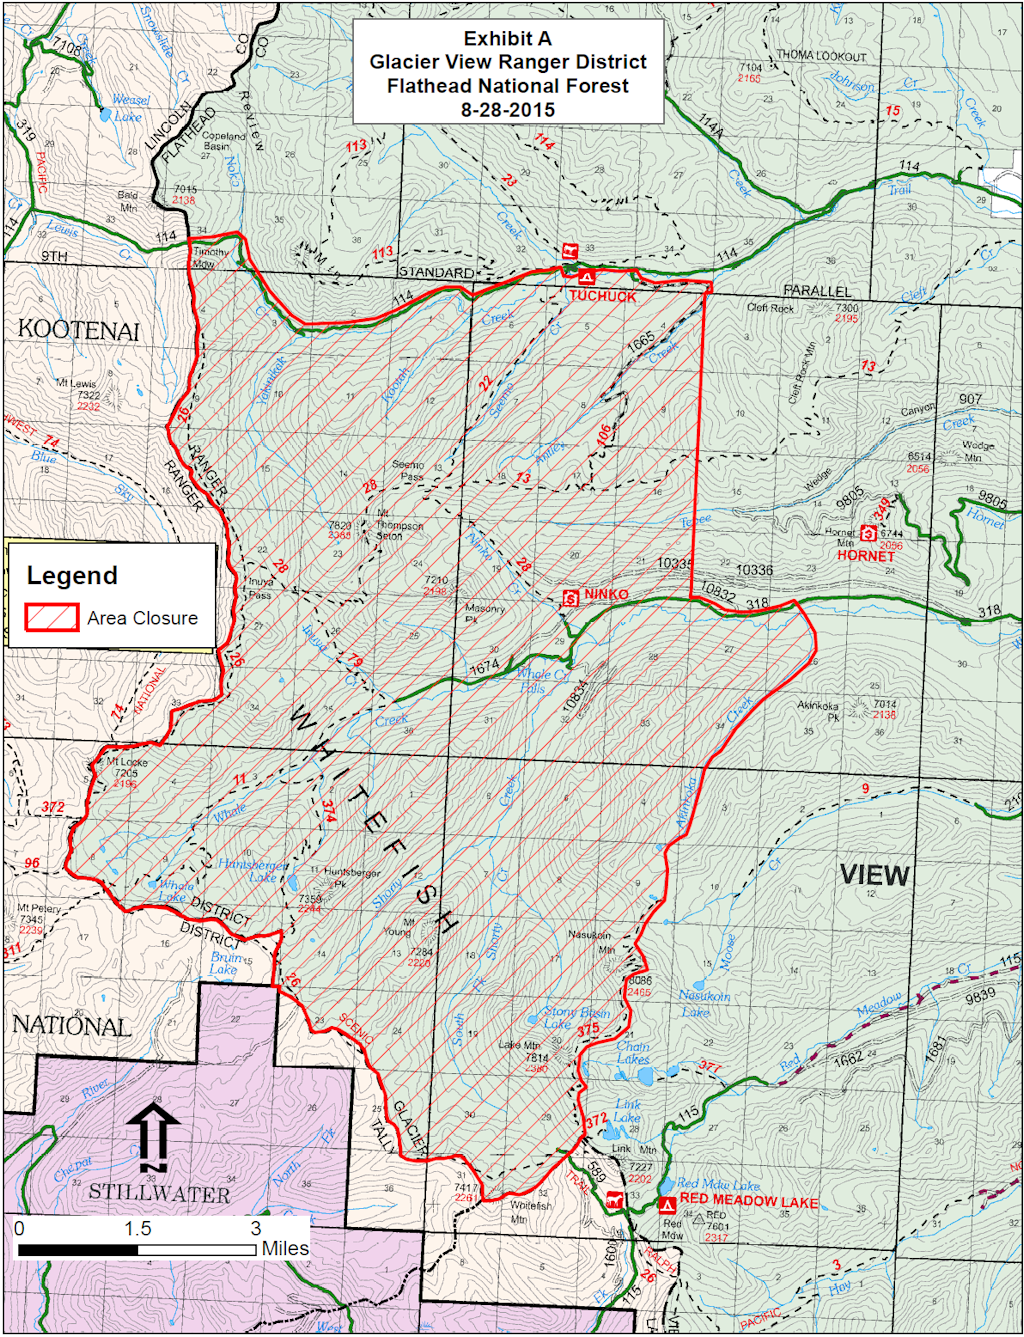 Marston Fire - FNF Area Closure, Aug 28, 2015